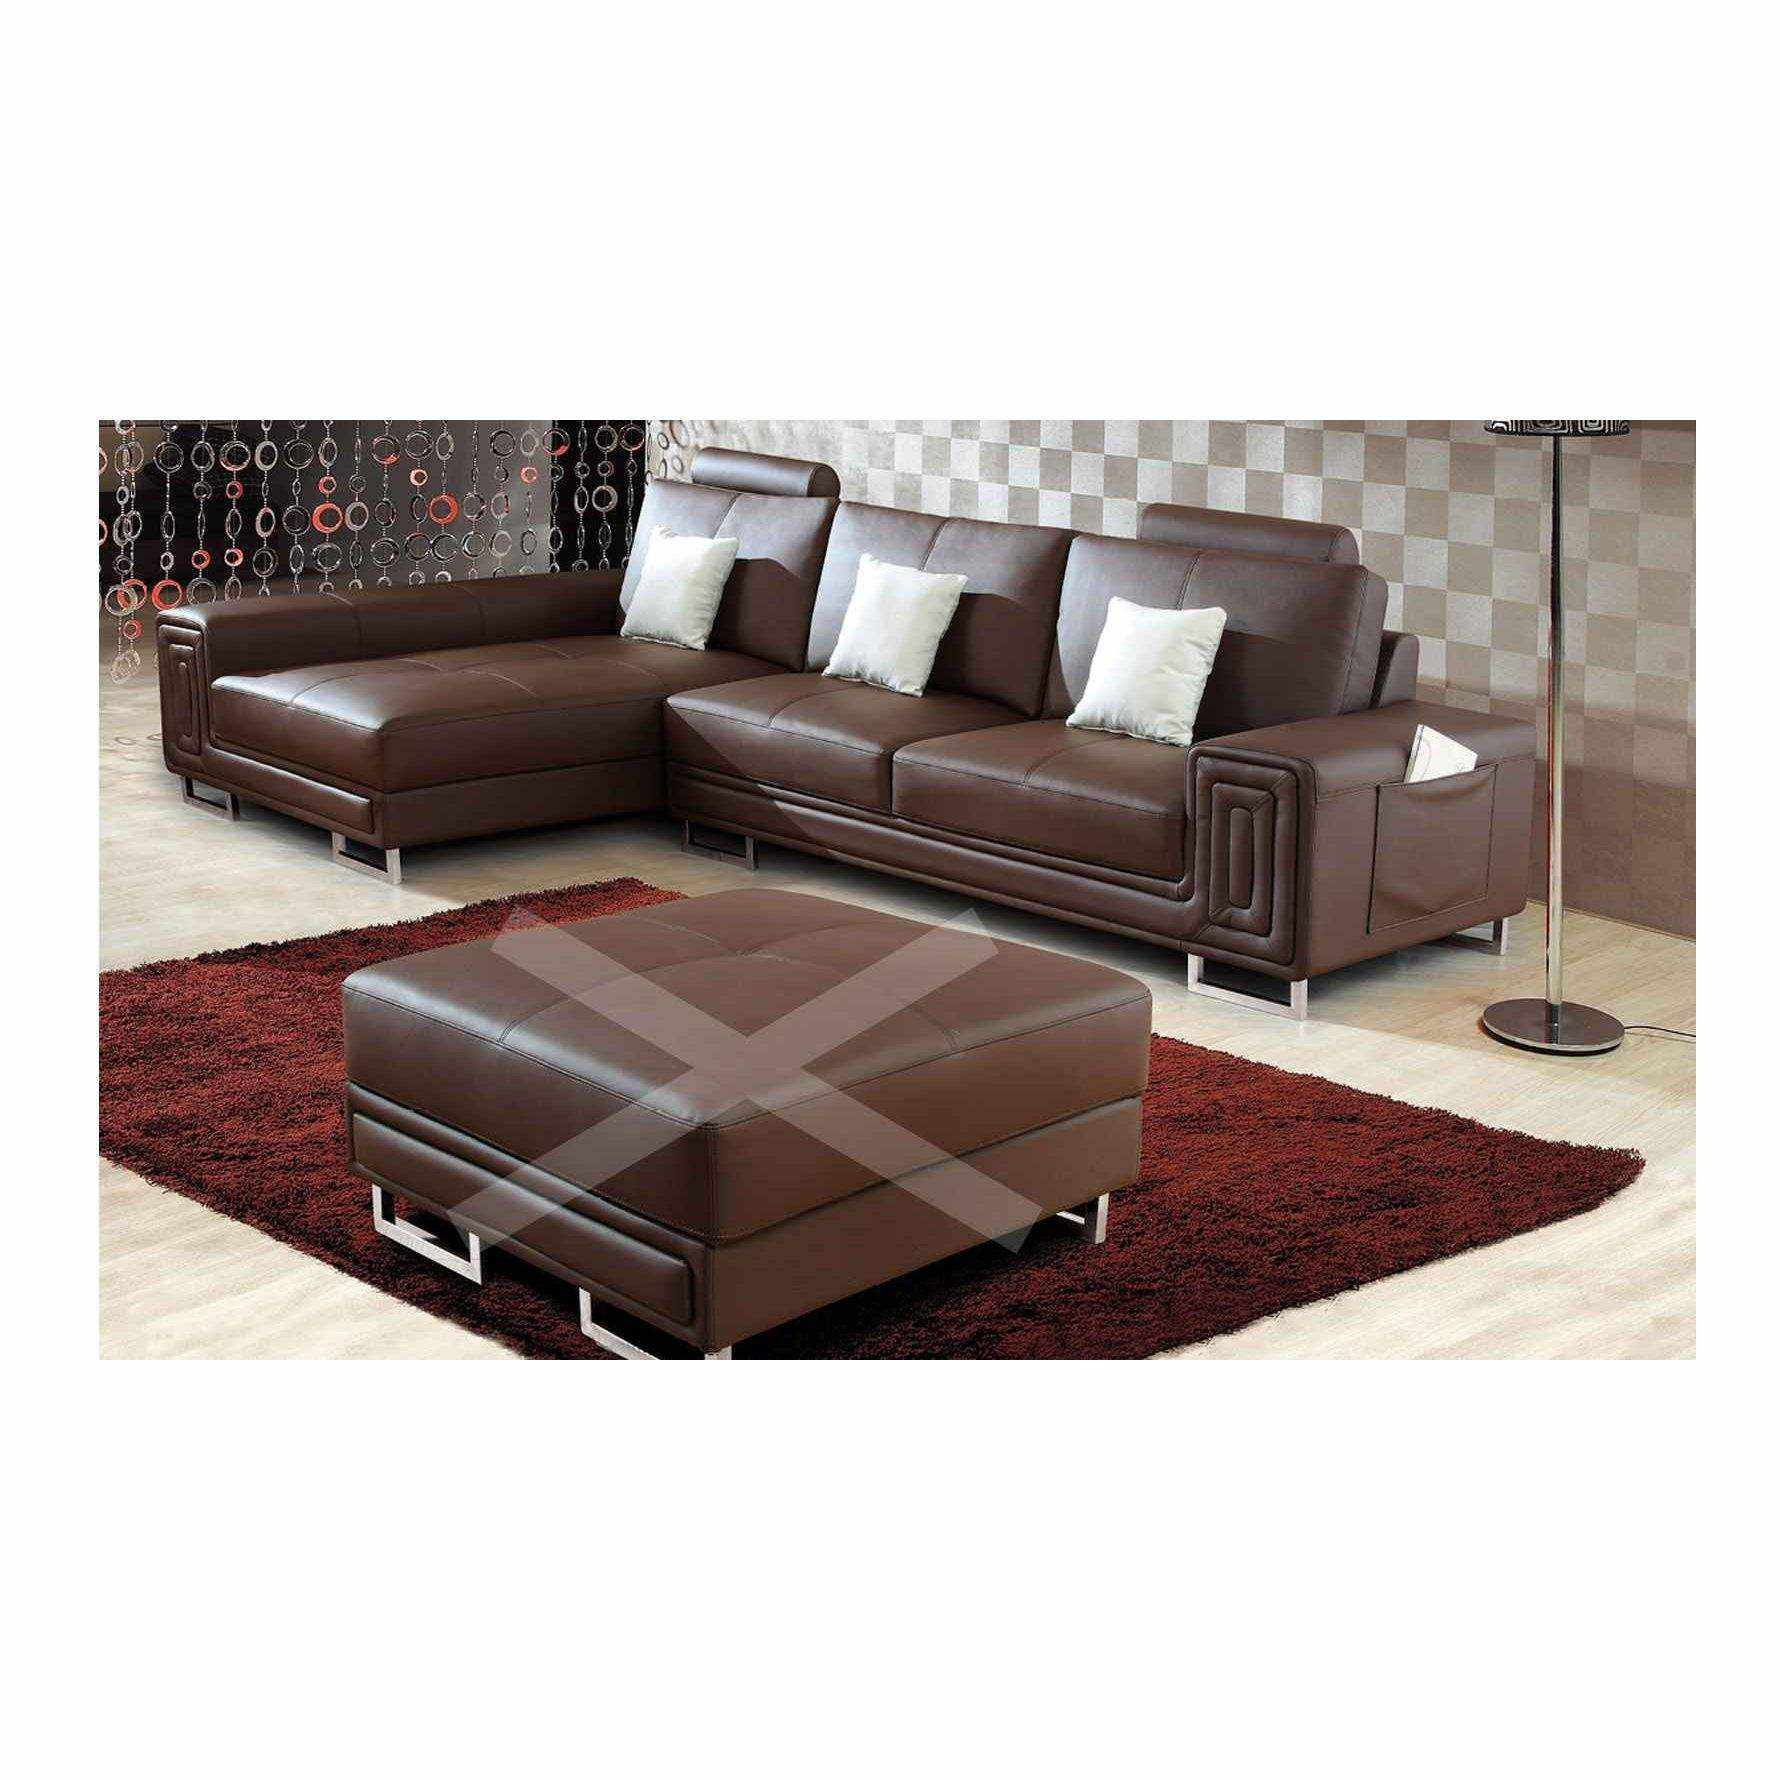 Deco in paris canape cuir d angle marron tetieres relax for Canape d angle cuir